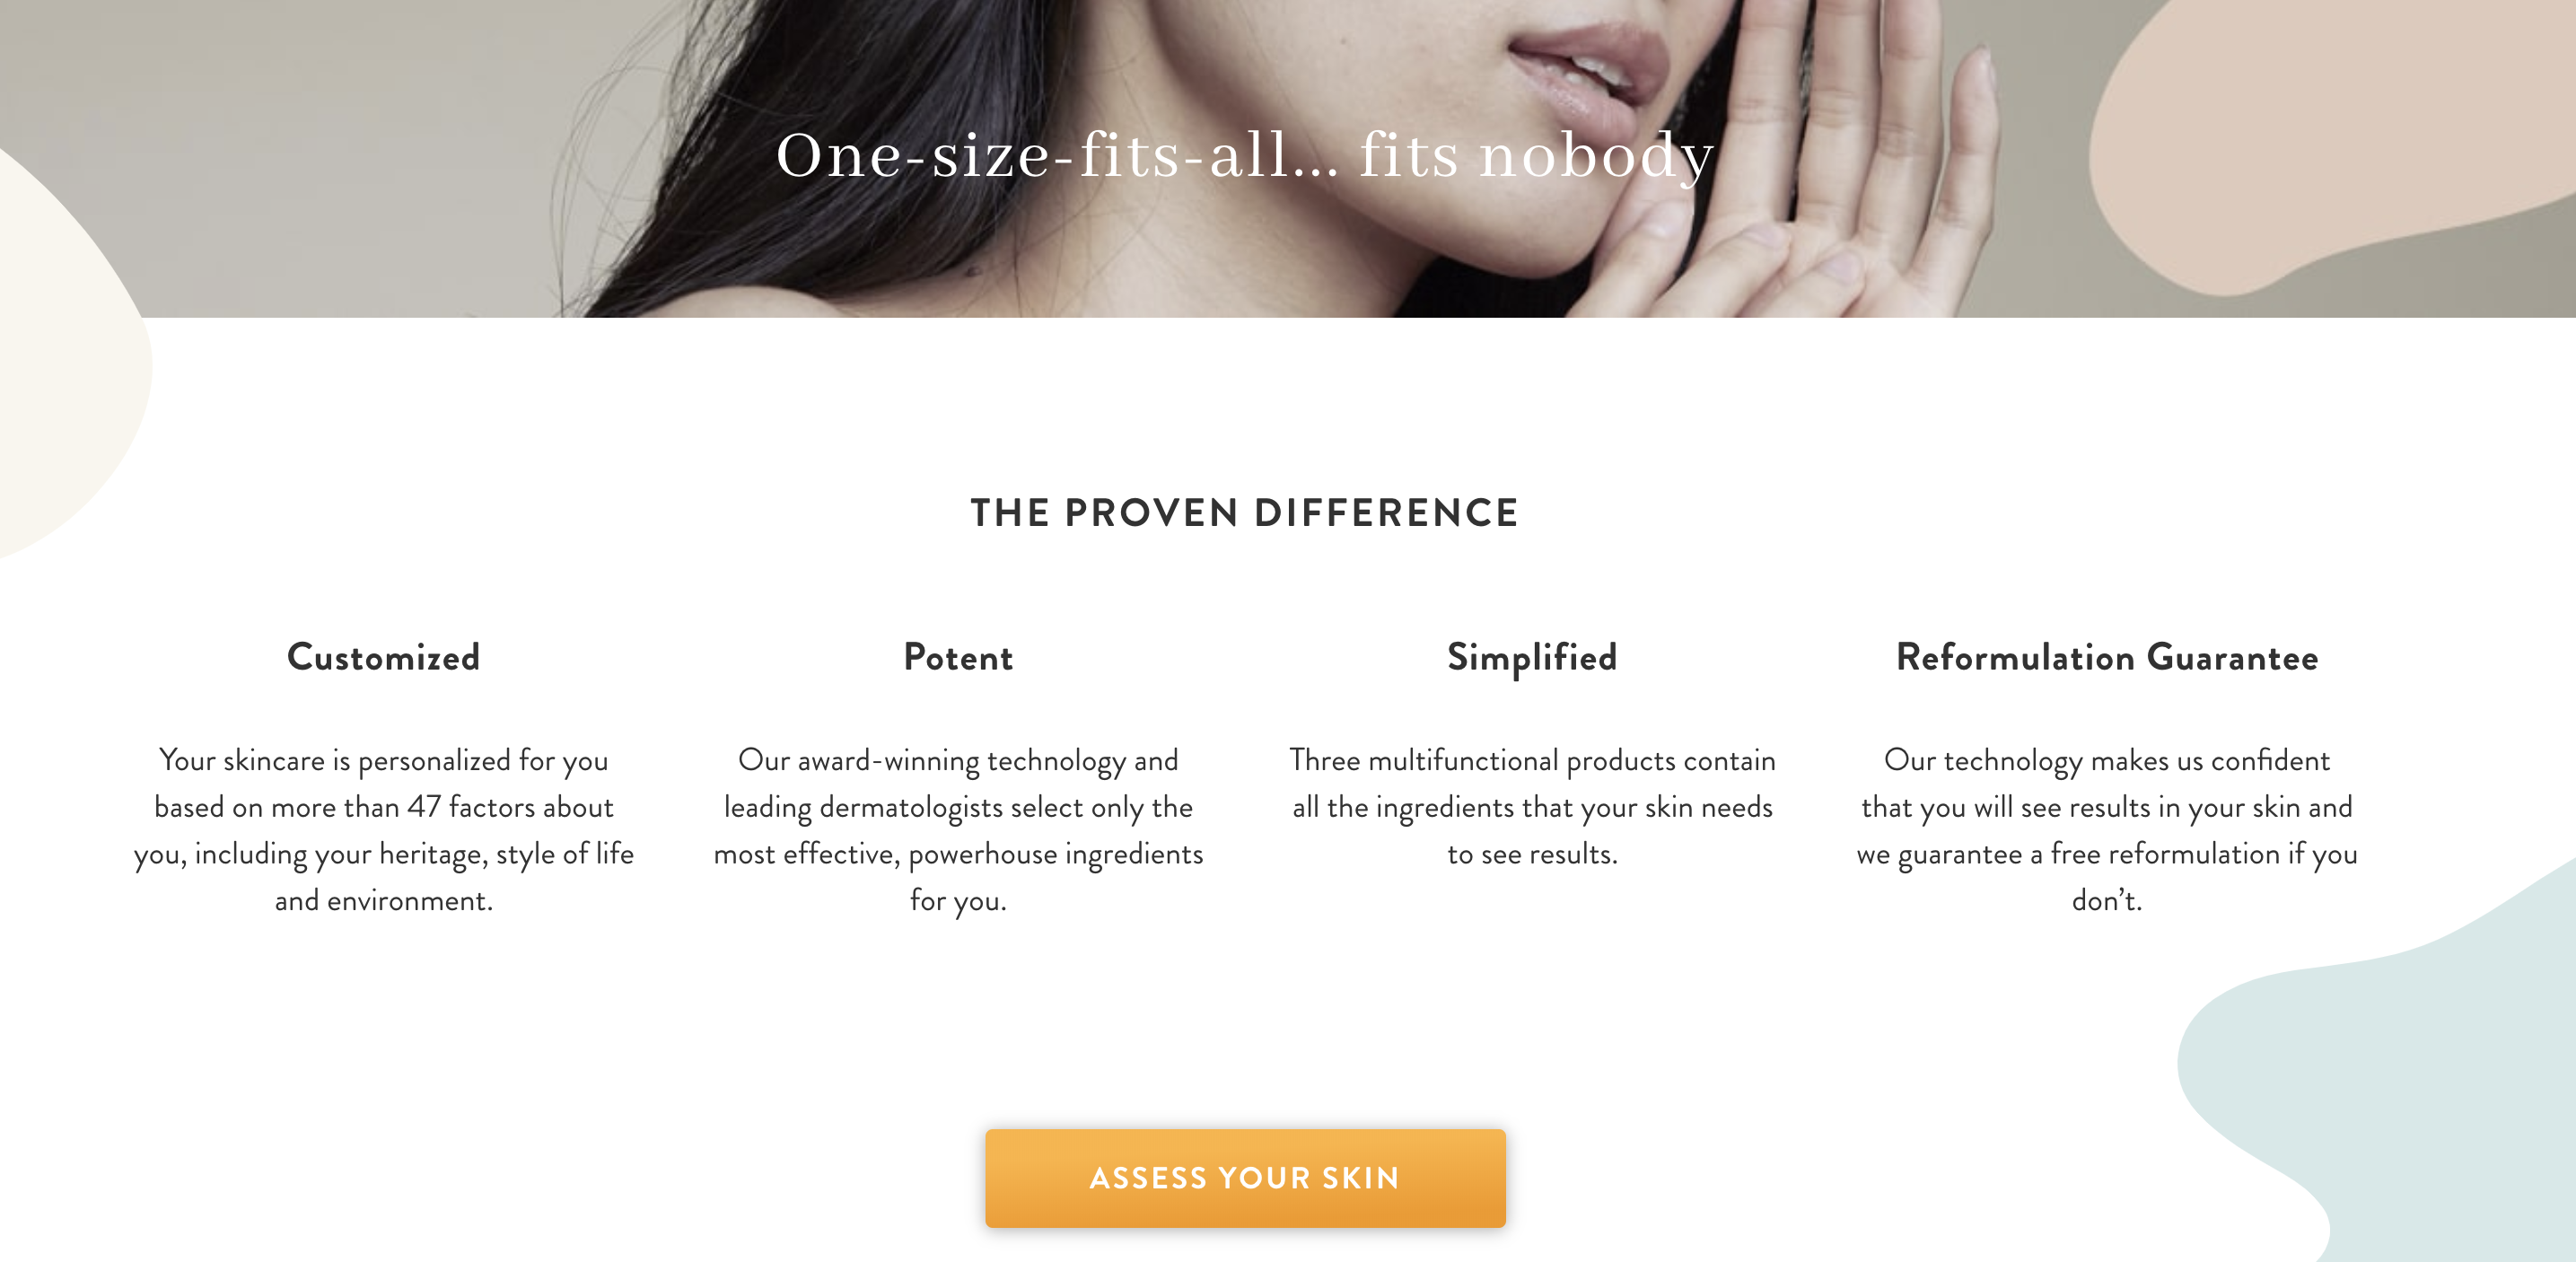 The value propositions Proven Skincare lists.